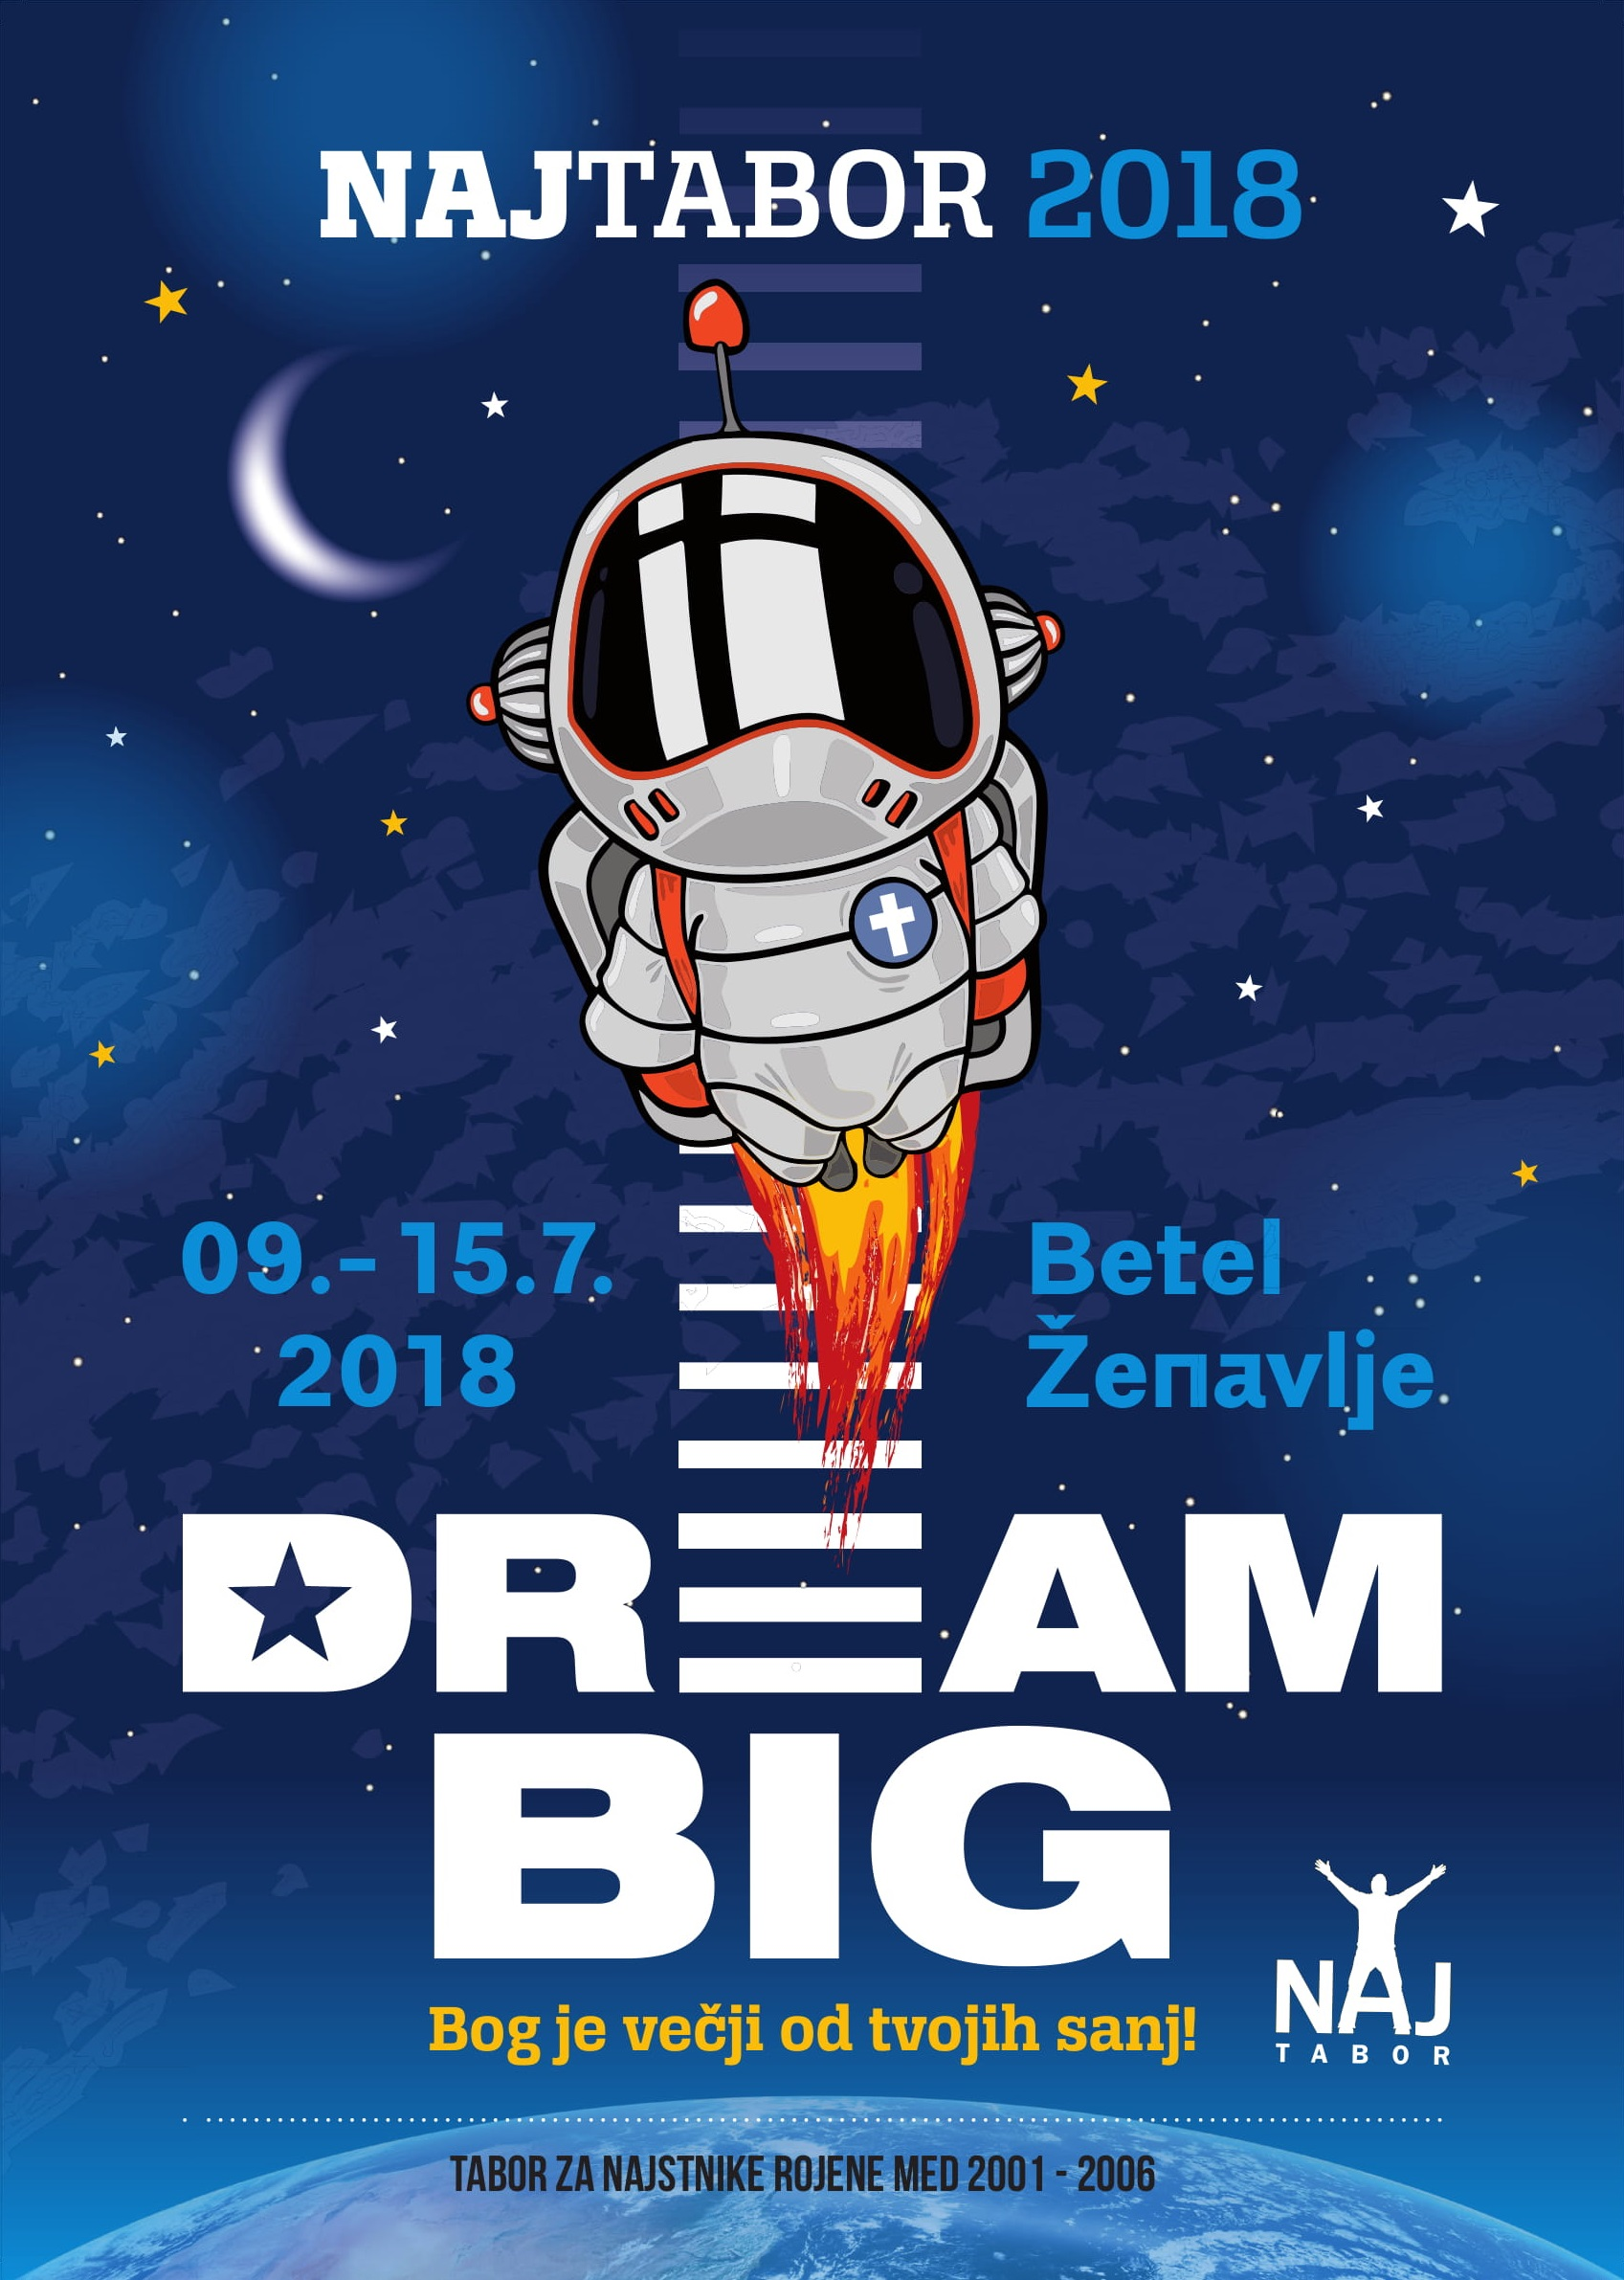 Dream big - NajTabor 2018